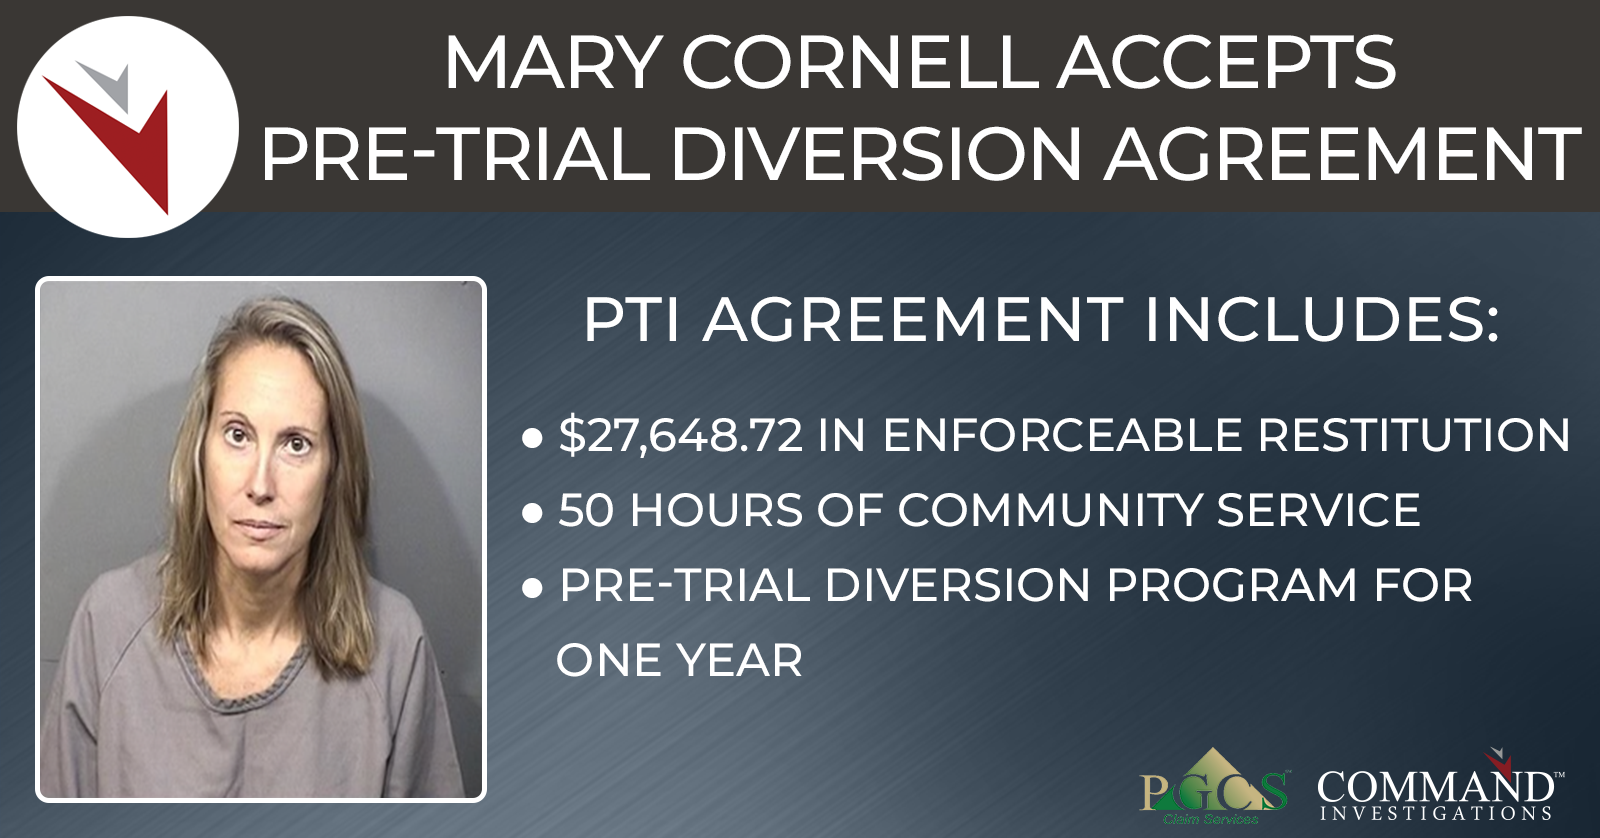 Mary Cornell accepts Pre-Trial Diversion agreement